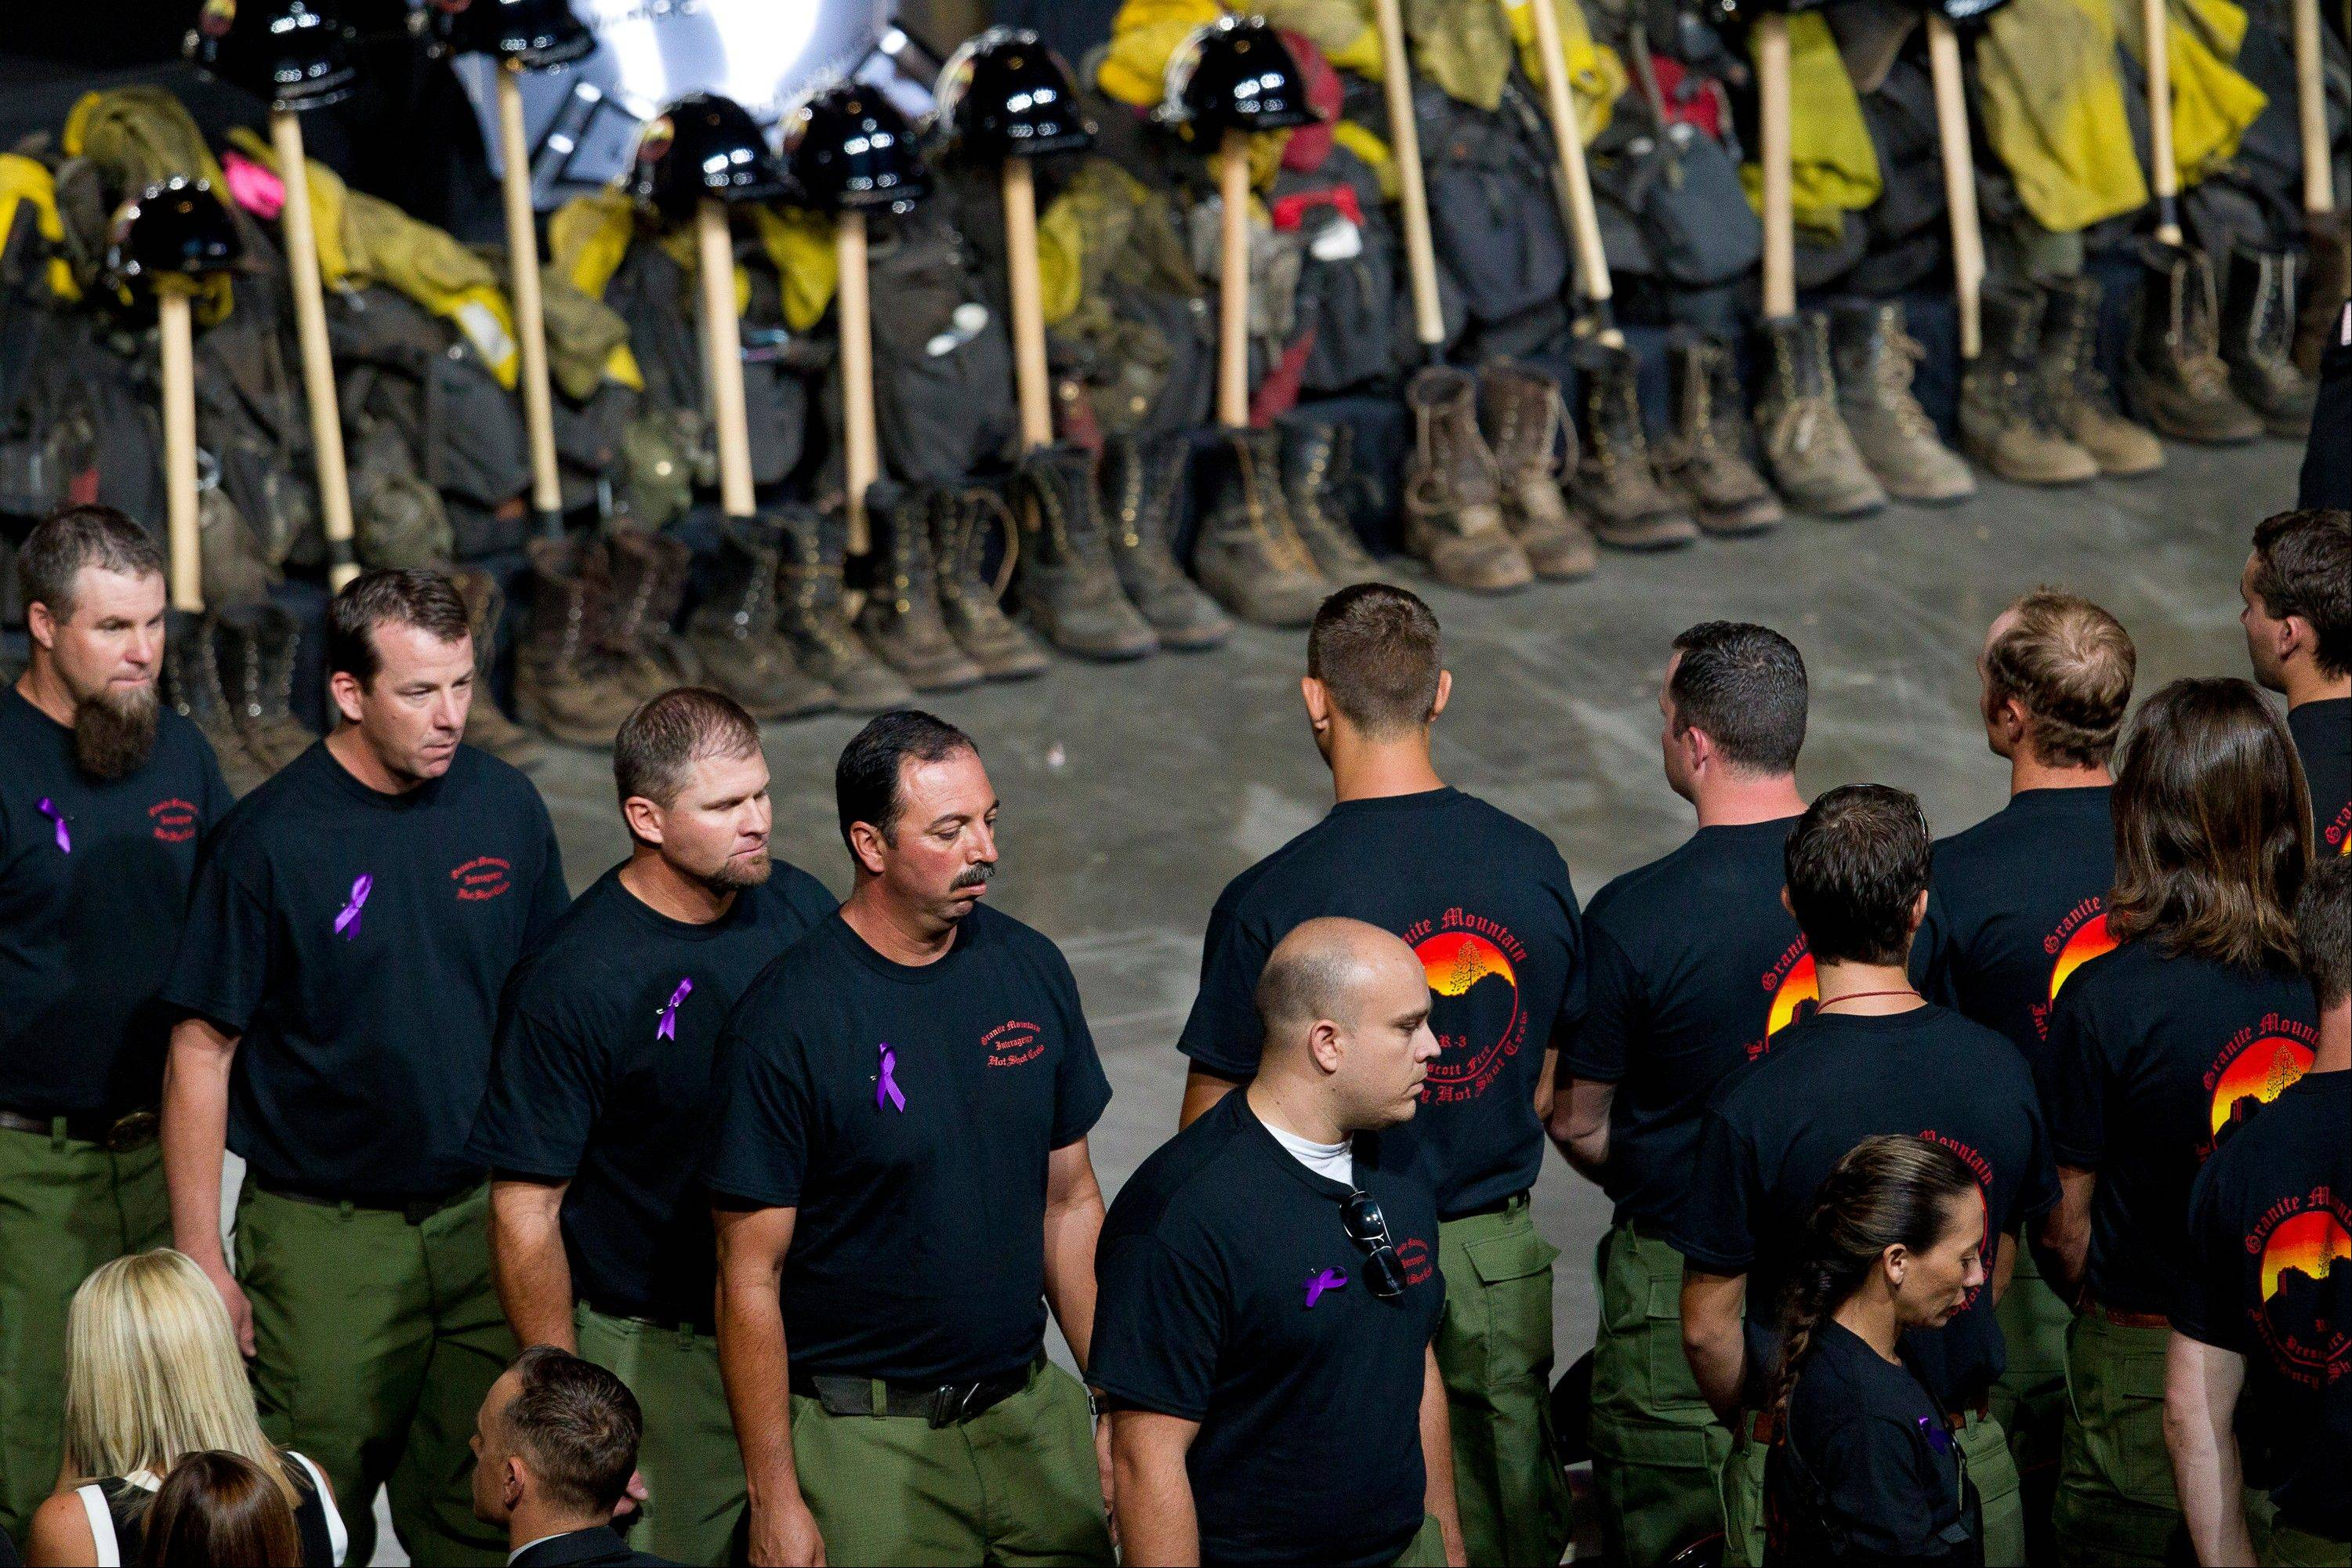 Former Granite Mountain Hotshot firefighters walk past ceremonial firefighter boots and clothing during a memorial service for the 19 fallen firefighters at Tim's Toyota Center in Prescott Valley, Ariz. on Tuesday, July 9, 2013.